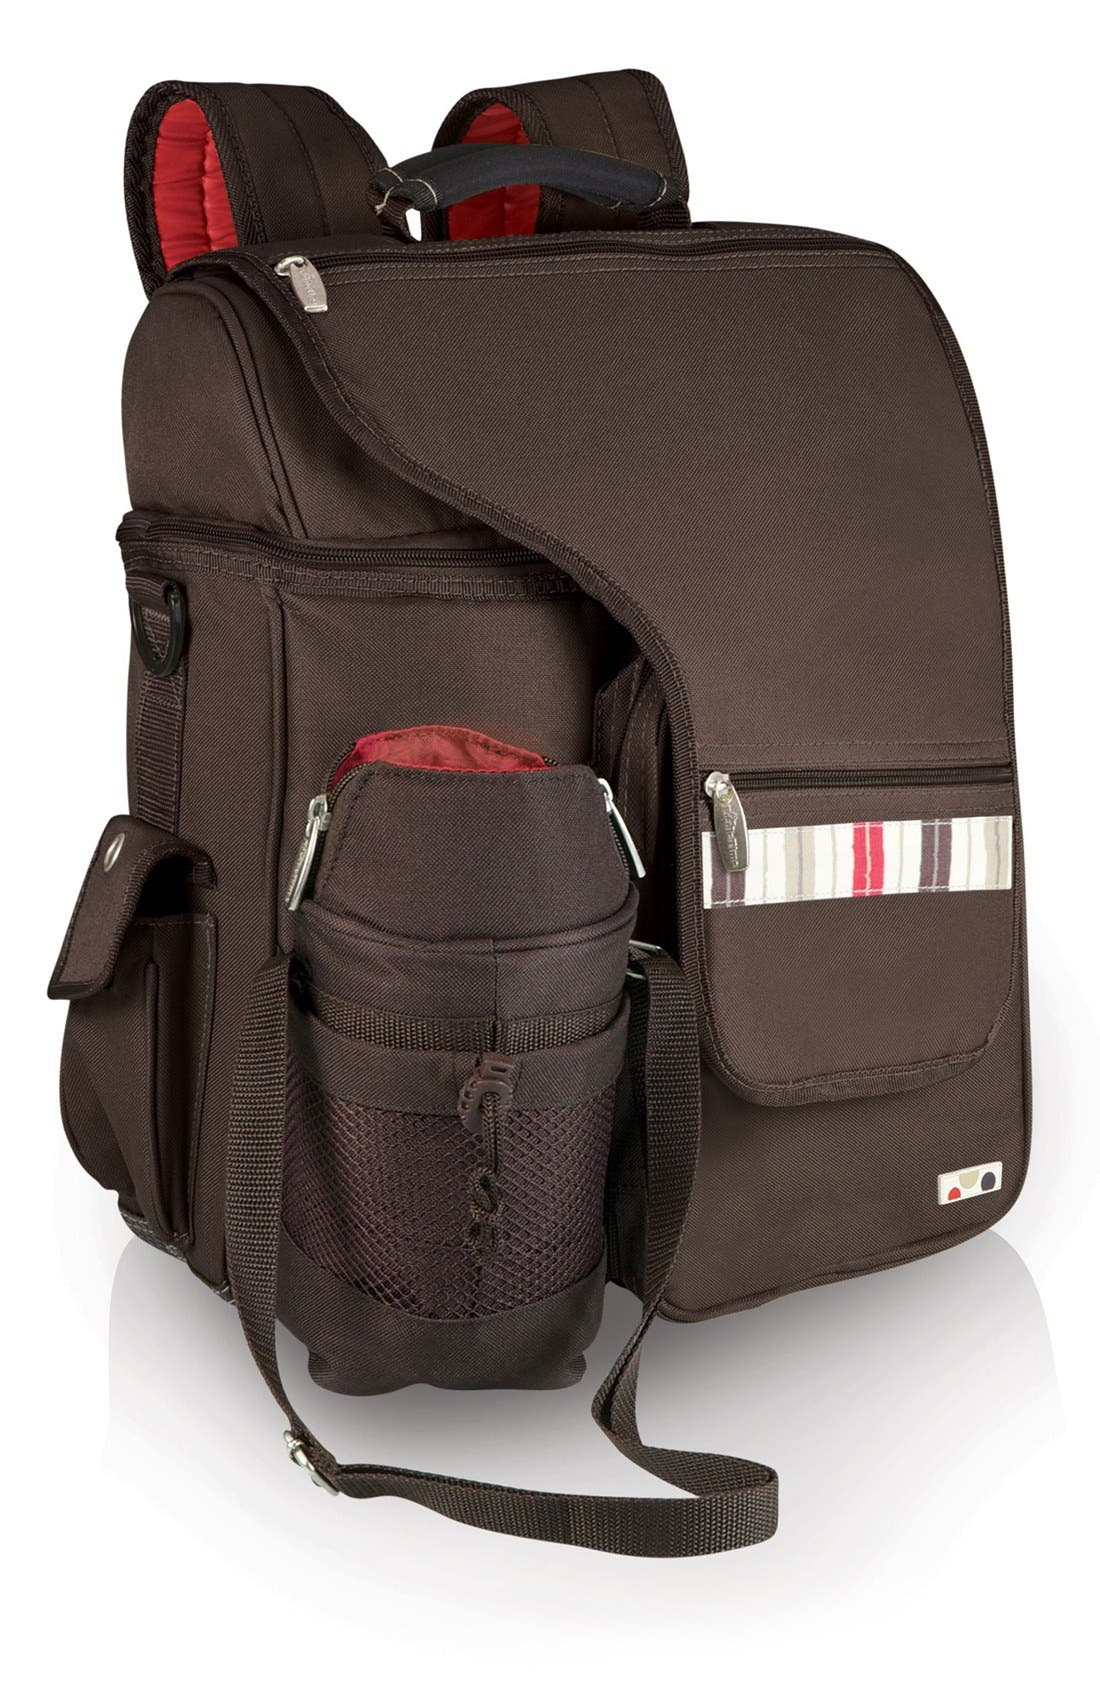 Alternate Image 1 Selected - Picnic Time Turismo Insulated Cooler Backpack